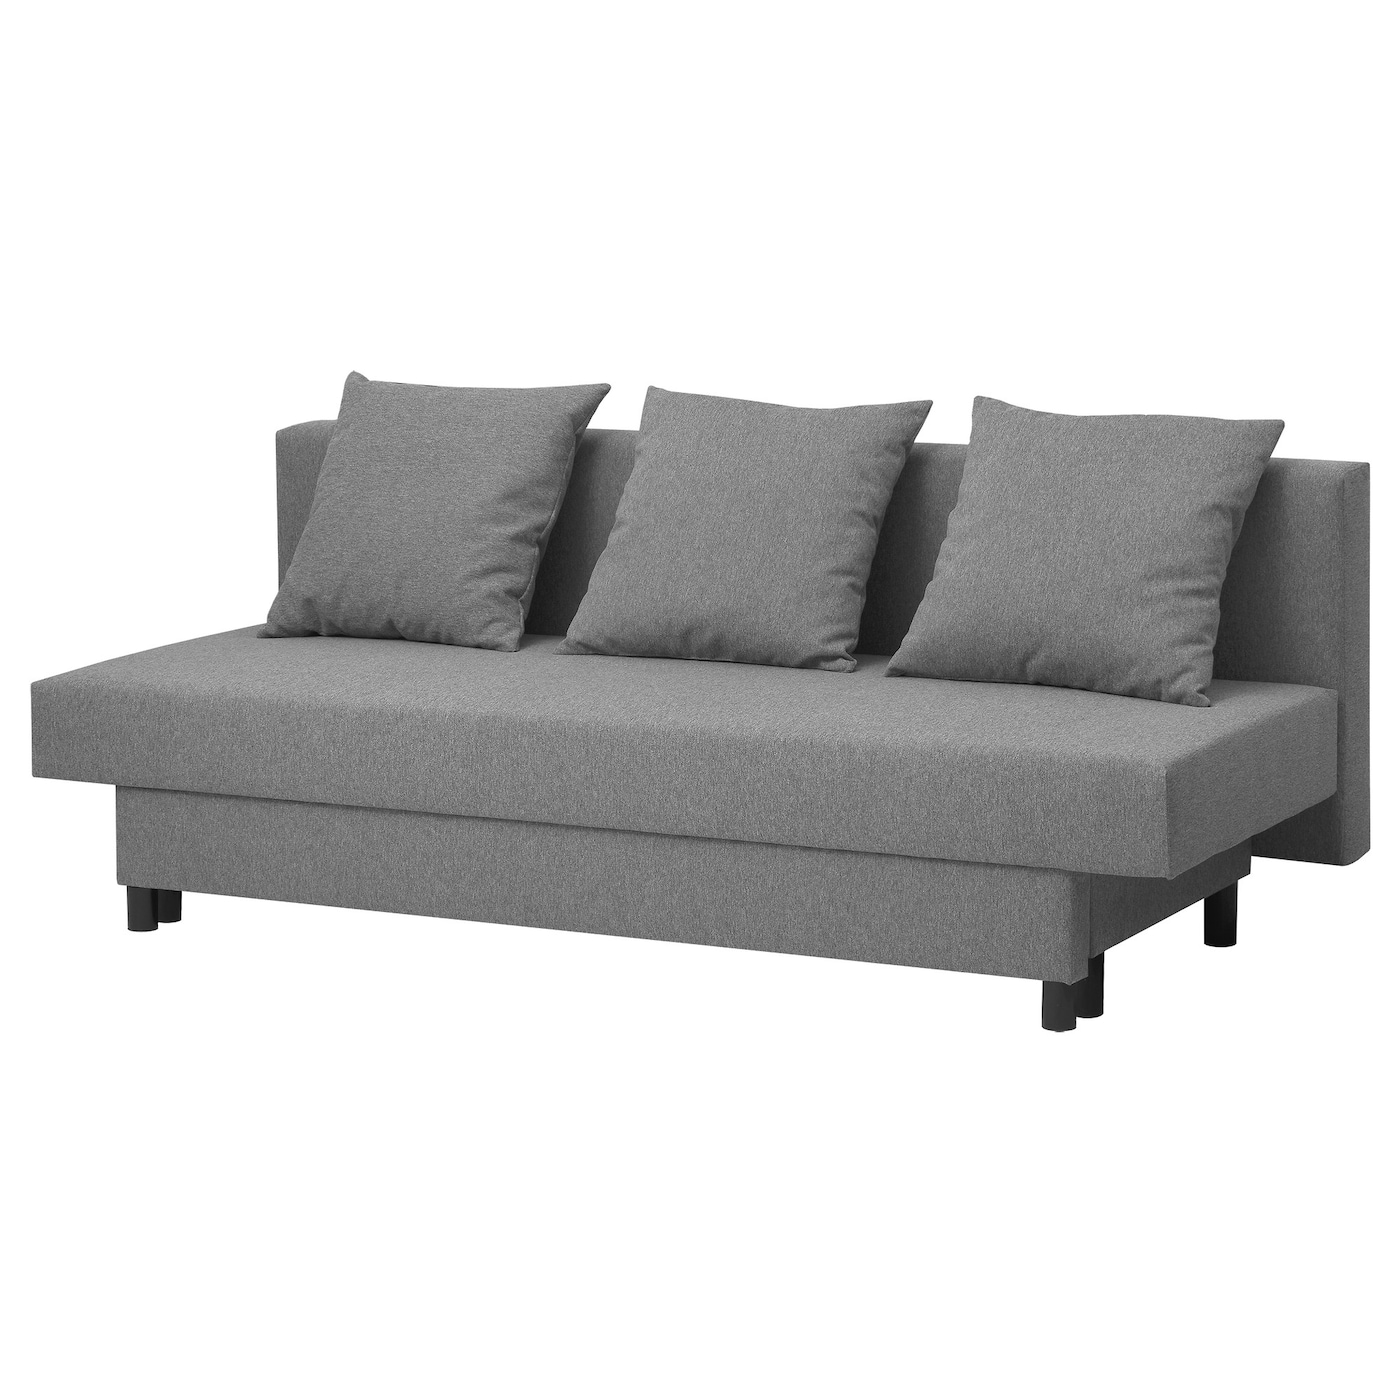 ASARUM 3er-Bettsofa - grau